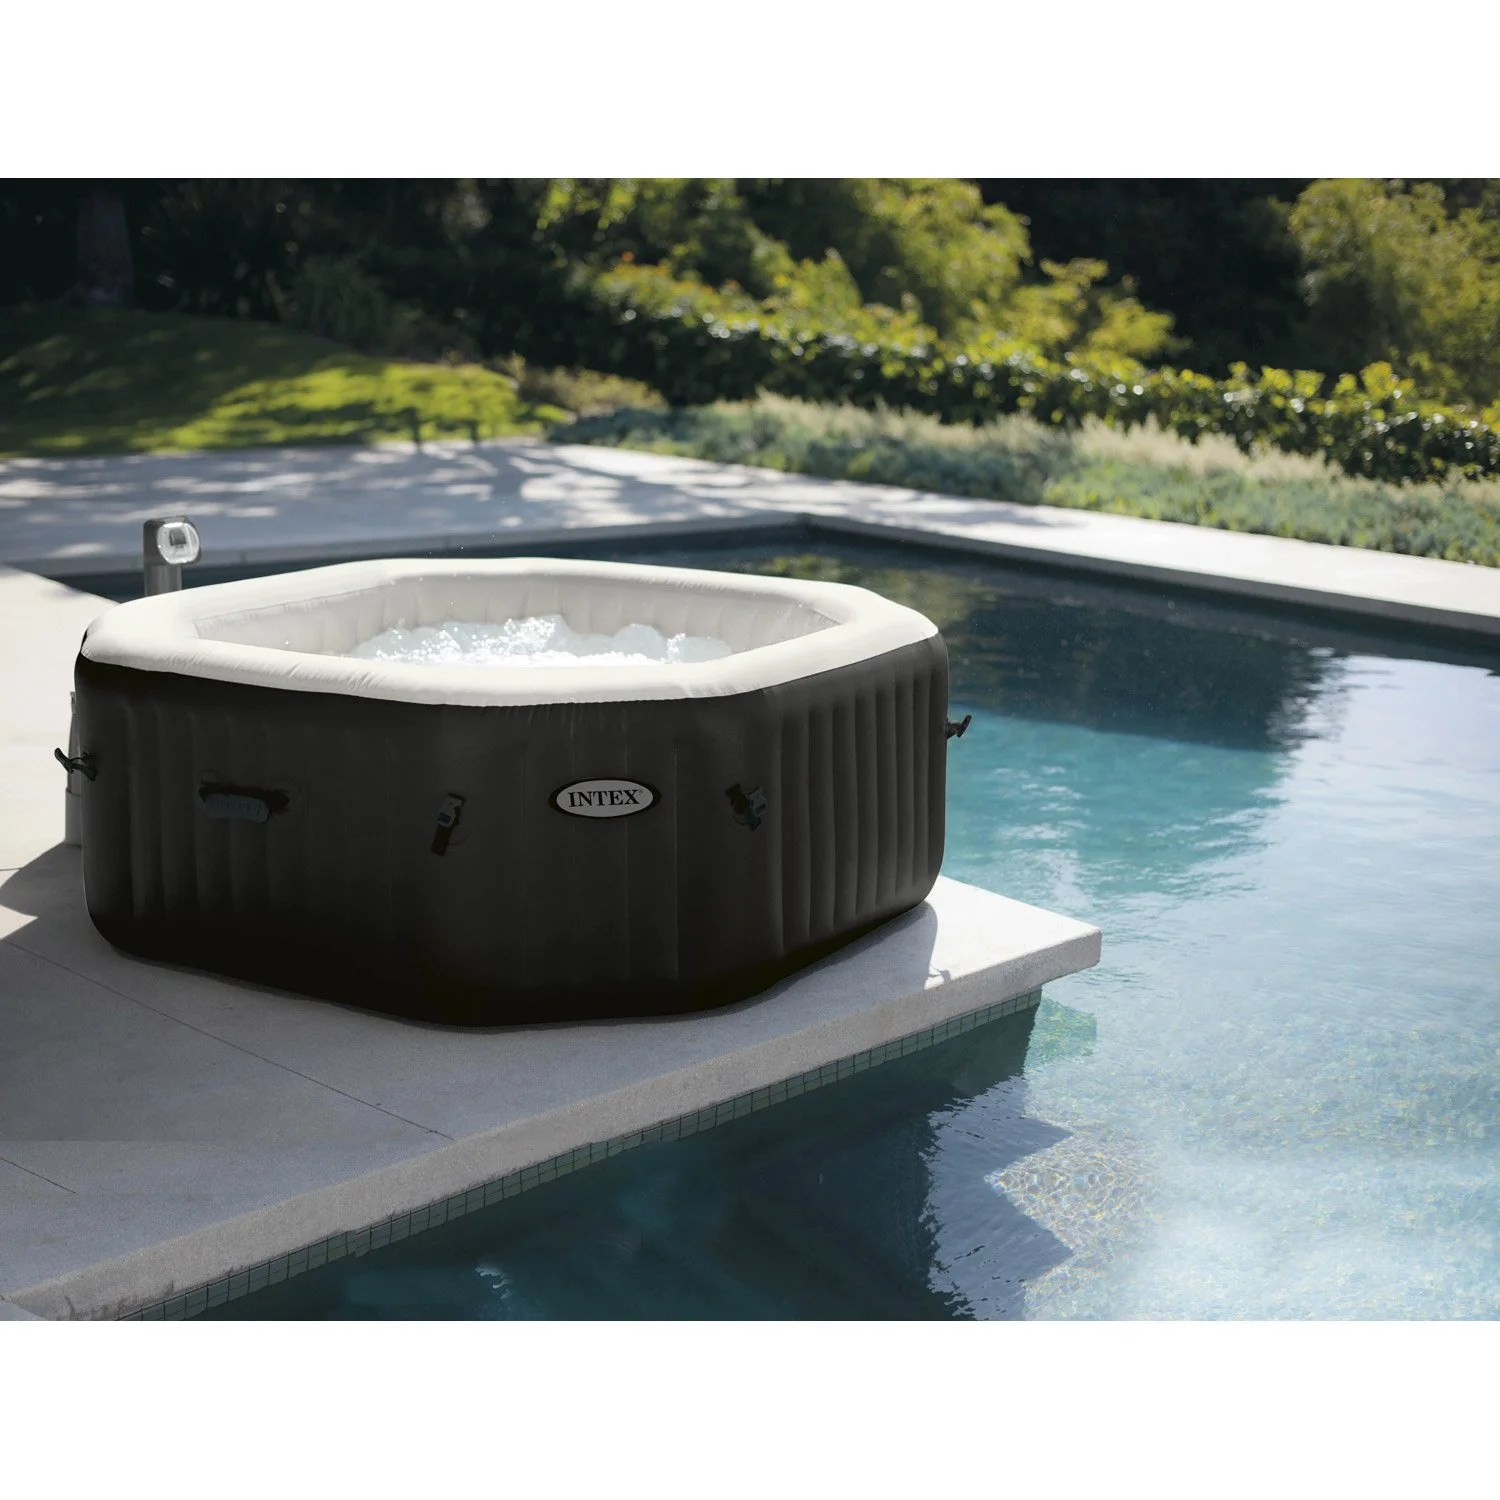 Salon De Jardin 8 Places Leroy Merlin Spa Gonflable Intex Purespa Bulles Octogonale, 6 Places